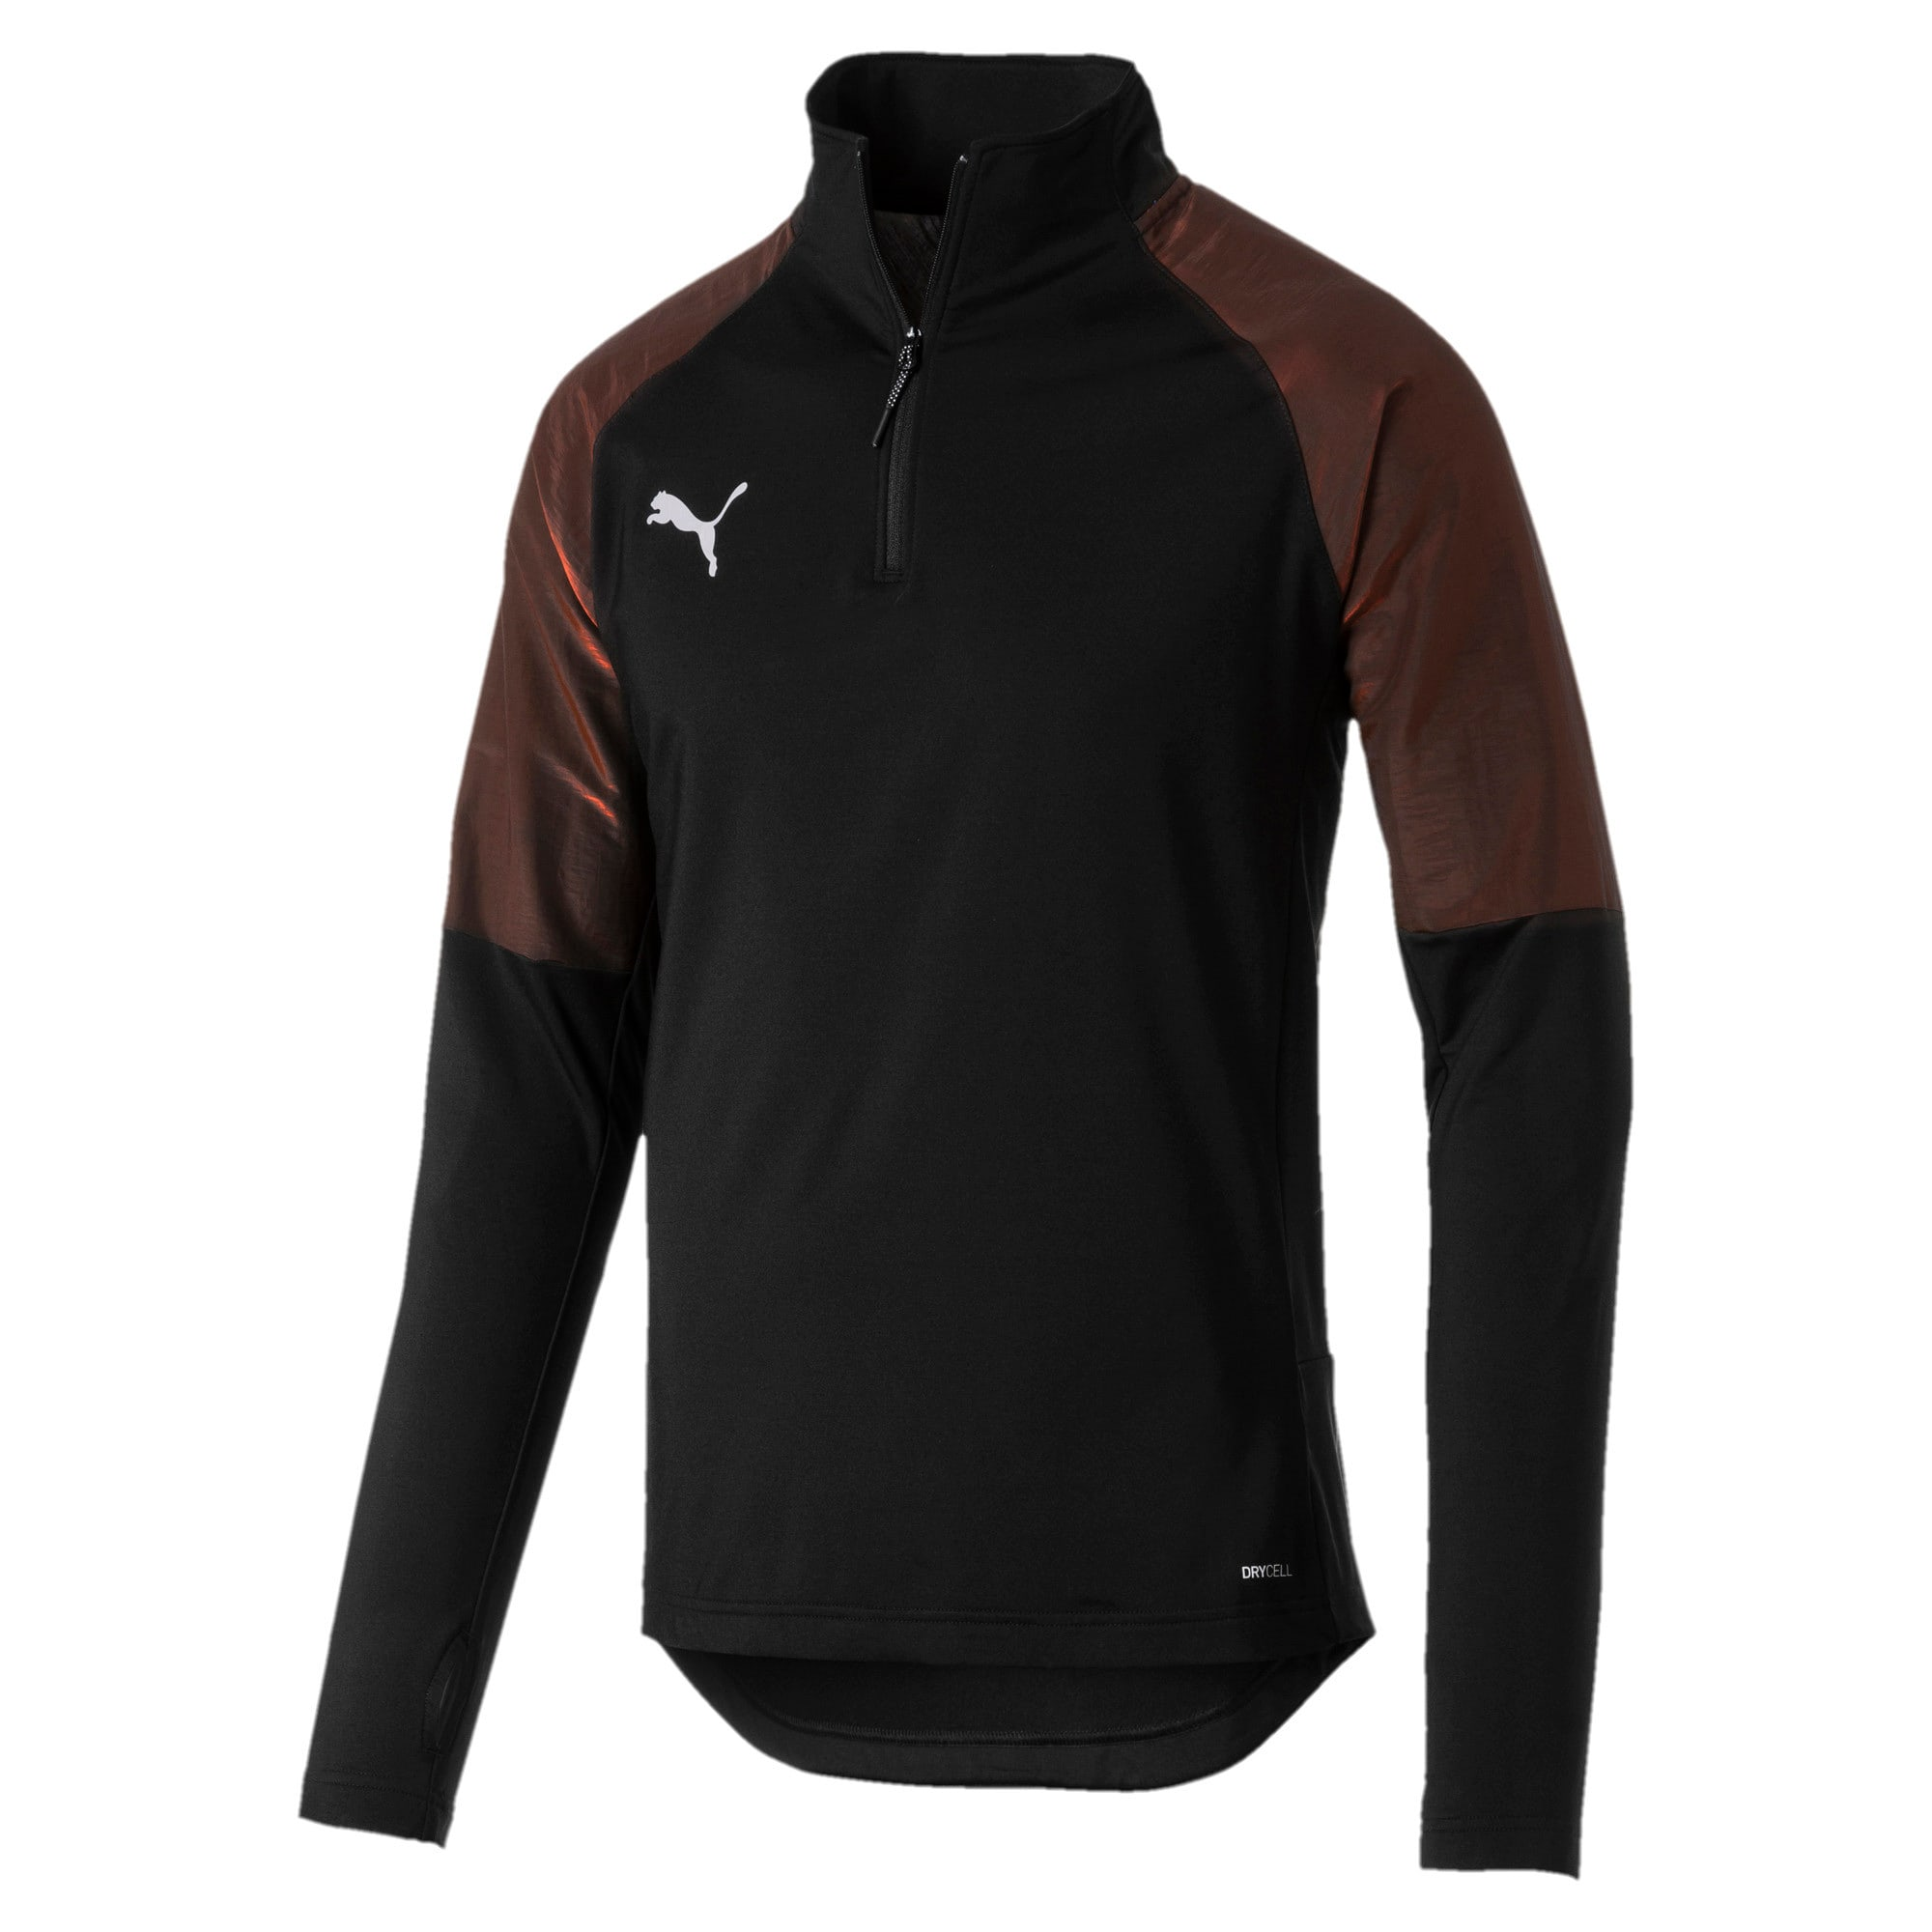 Thumbnail 4 of ftblNXT 1/4 Zip Herren Sweatshirt, Puma Black-Red Blast, medium